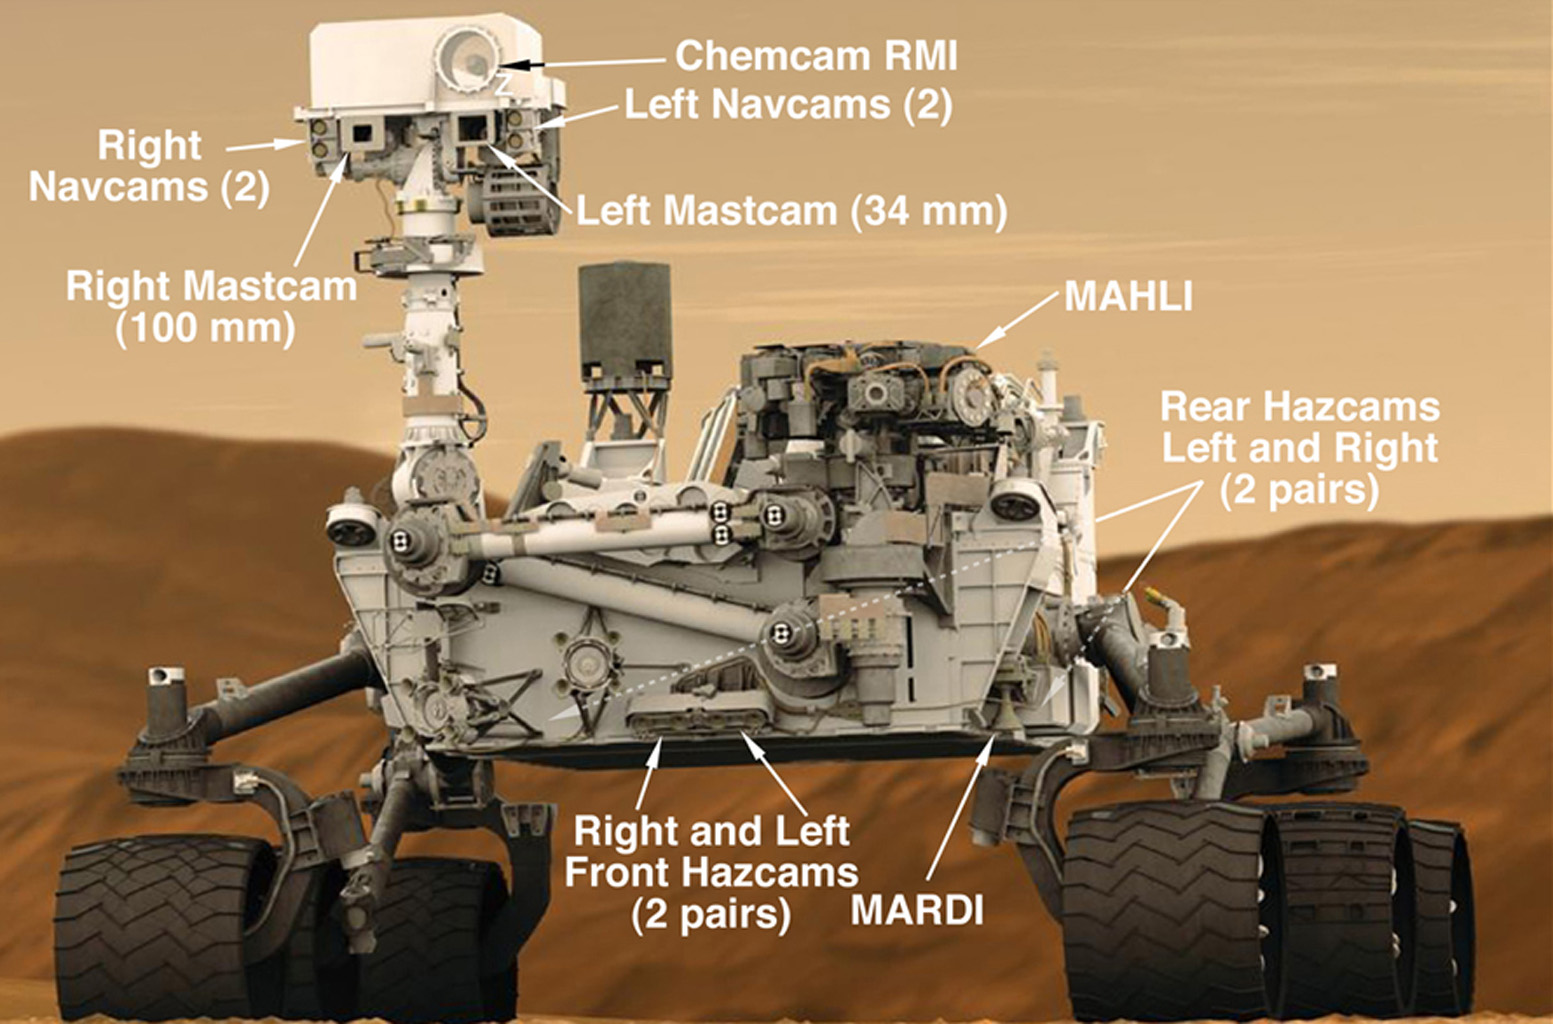 This graphic shows the locations of the cameras on NASA's Curiosity rover.